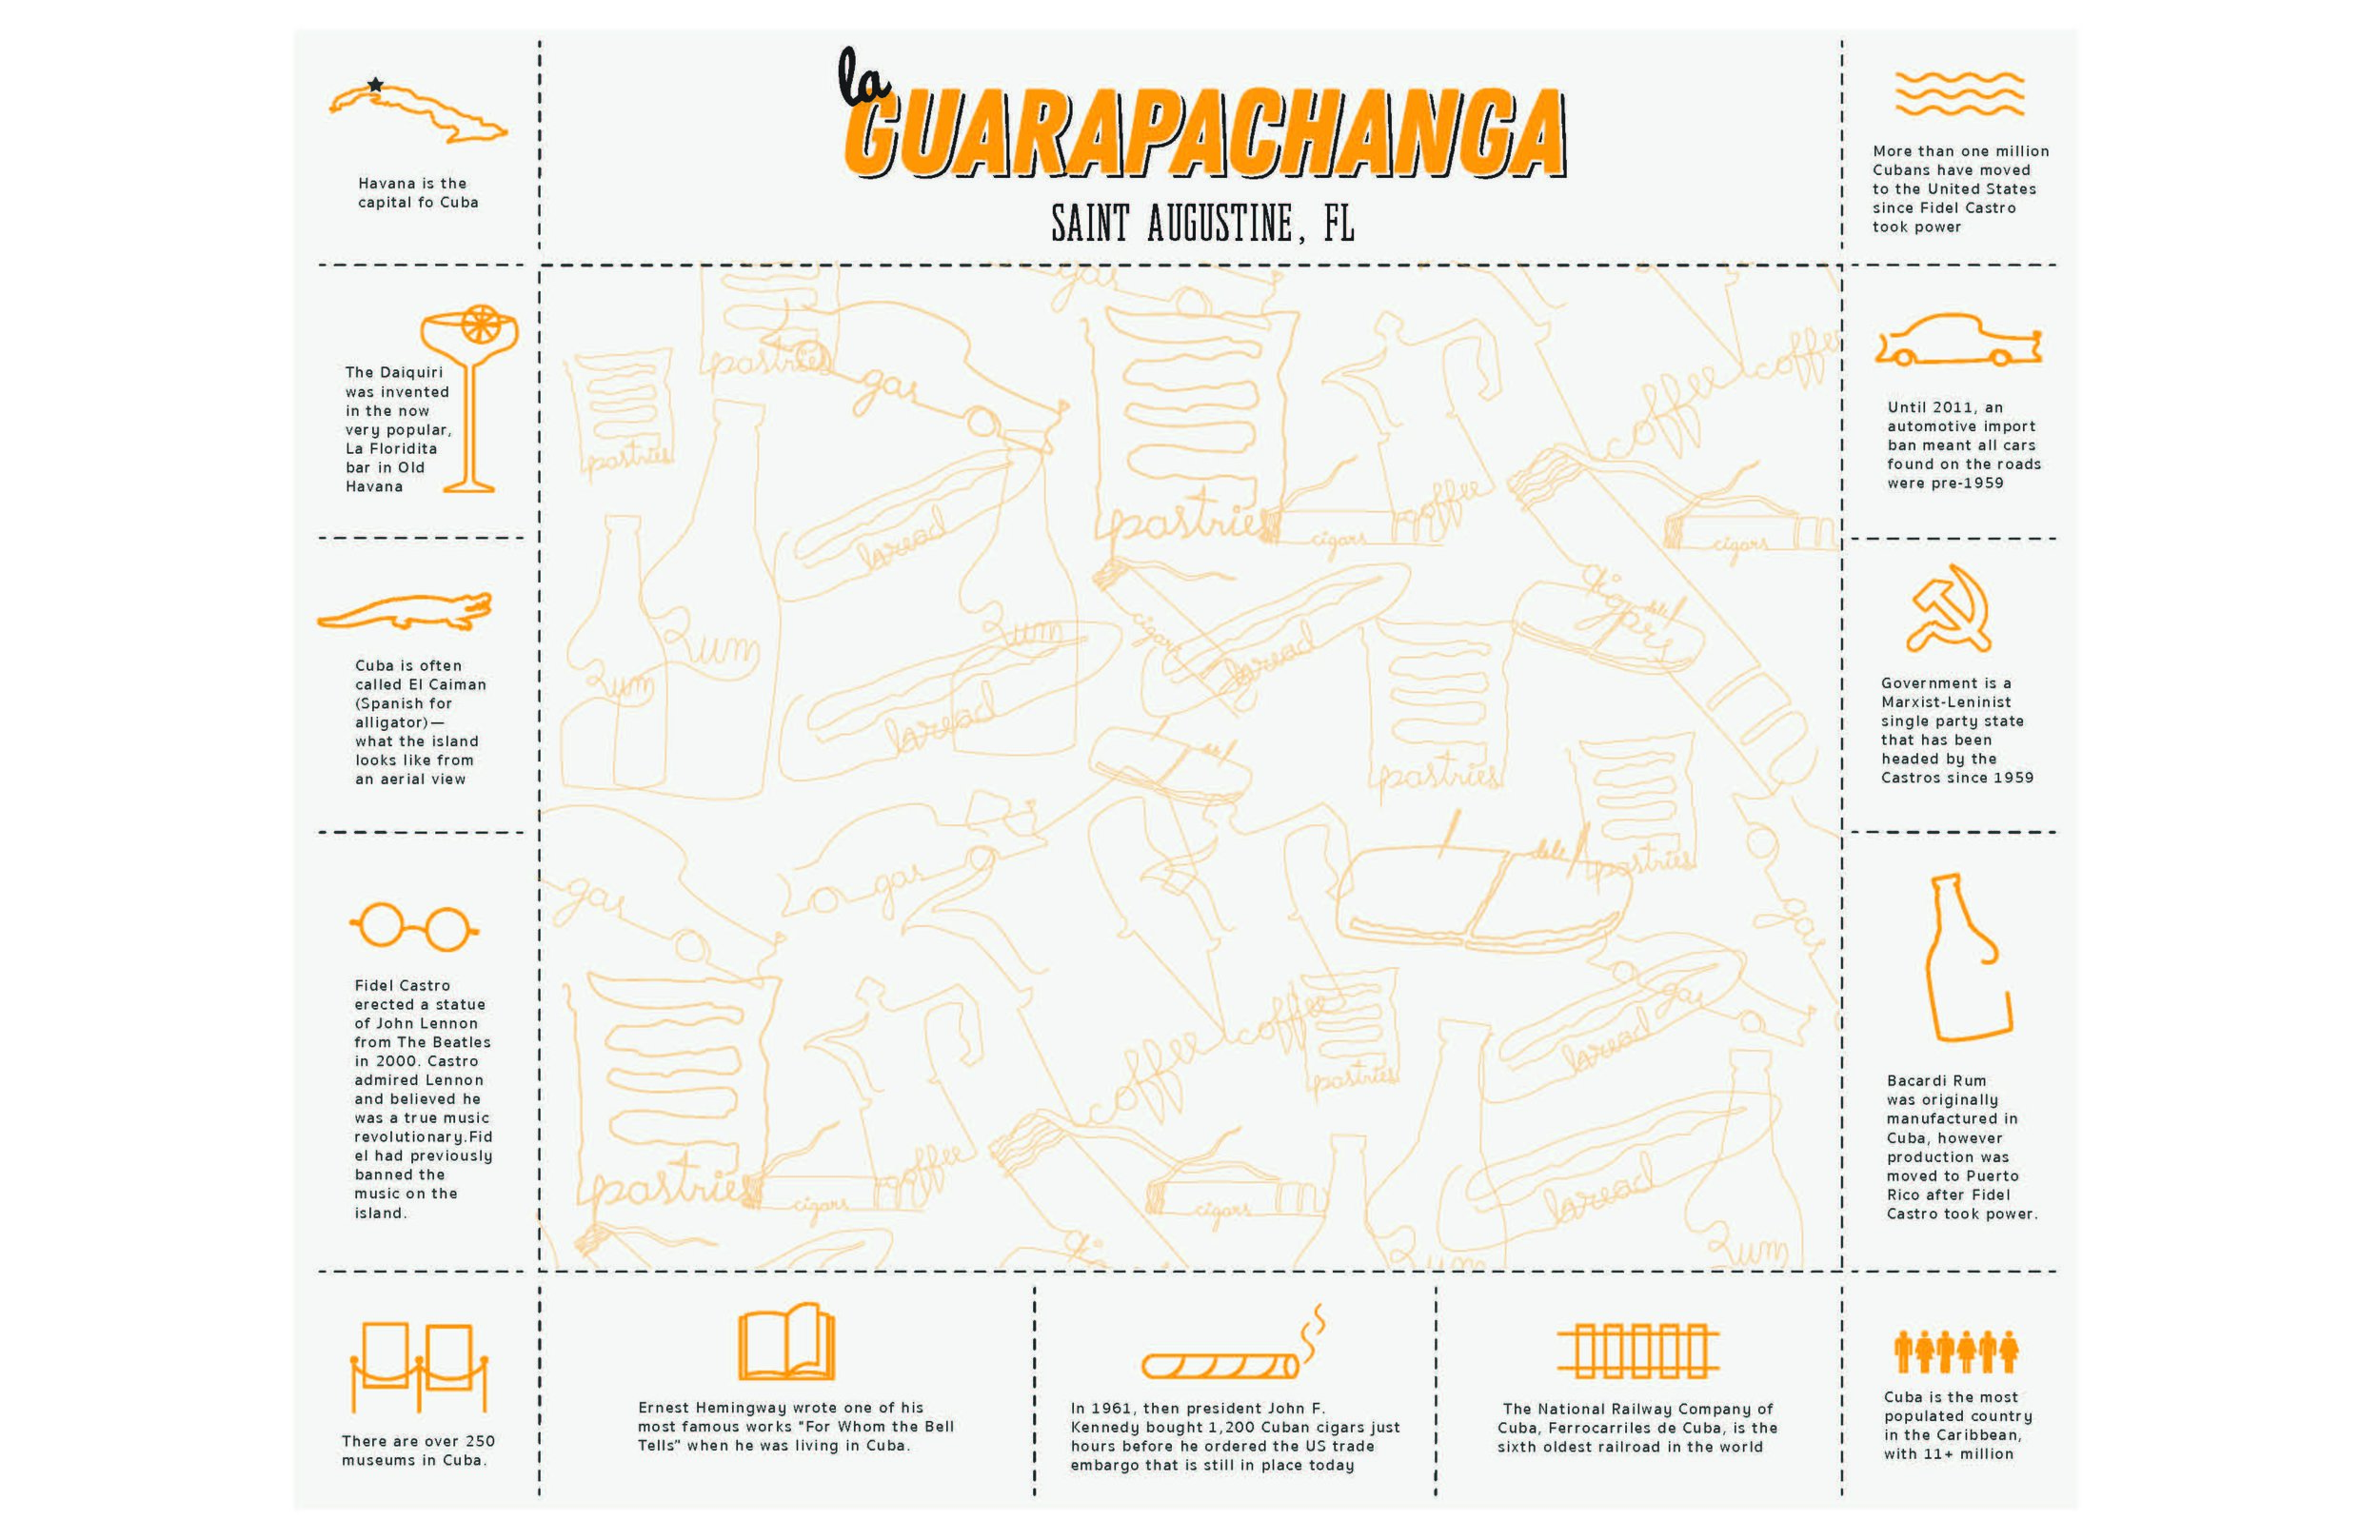 Placemat utilizes short blurbs and simple iconsas an interactive way for kids (and adults) to learn about Cuba